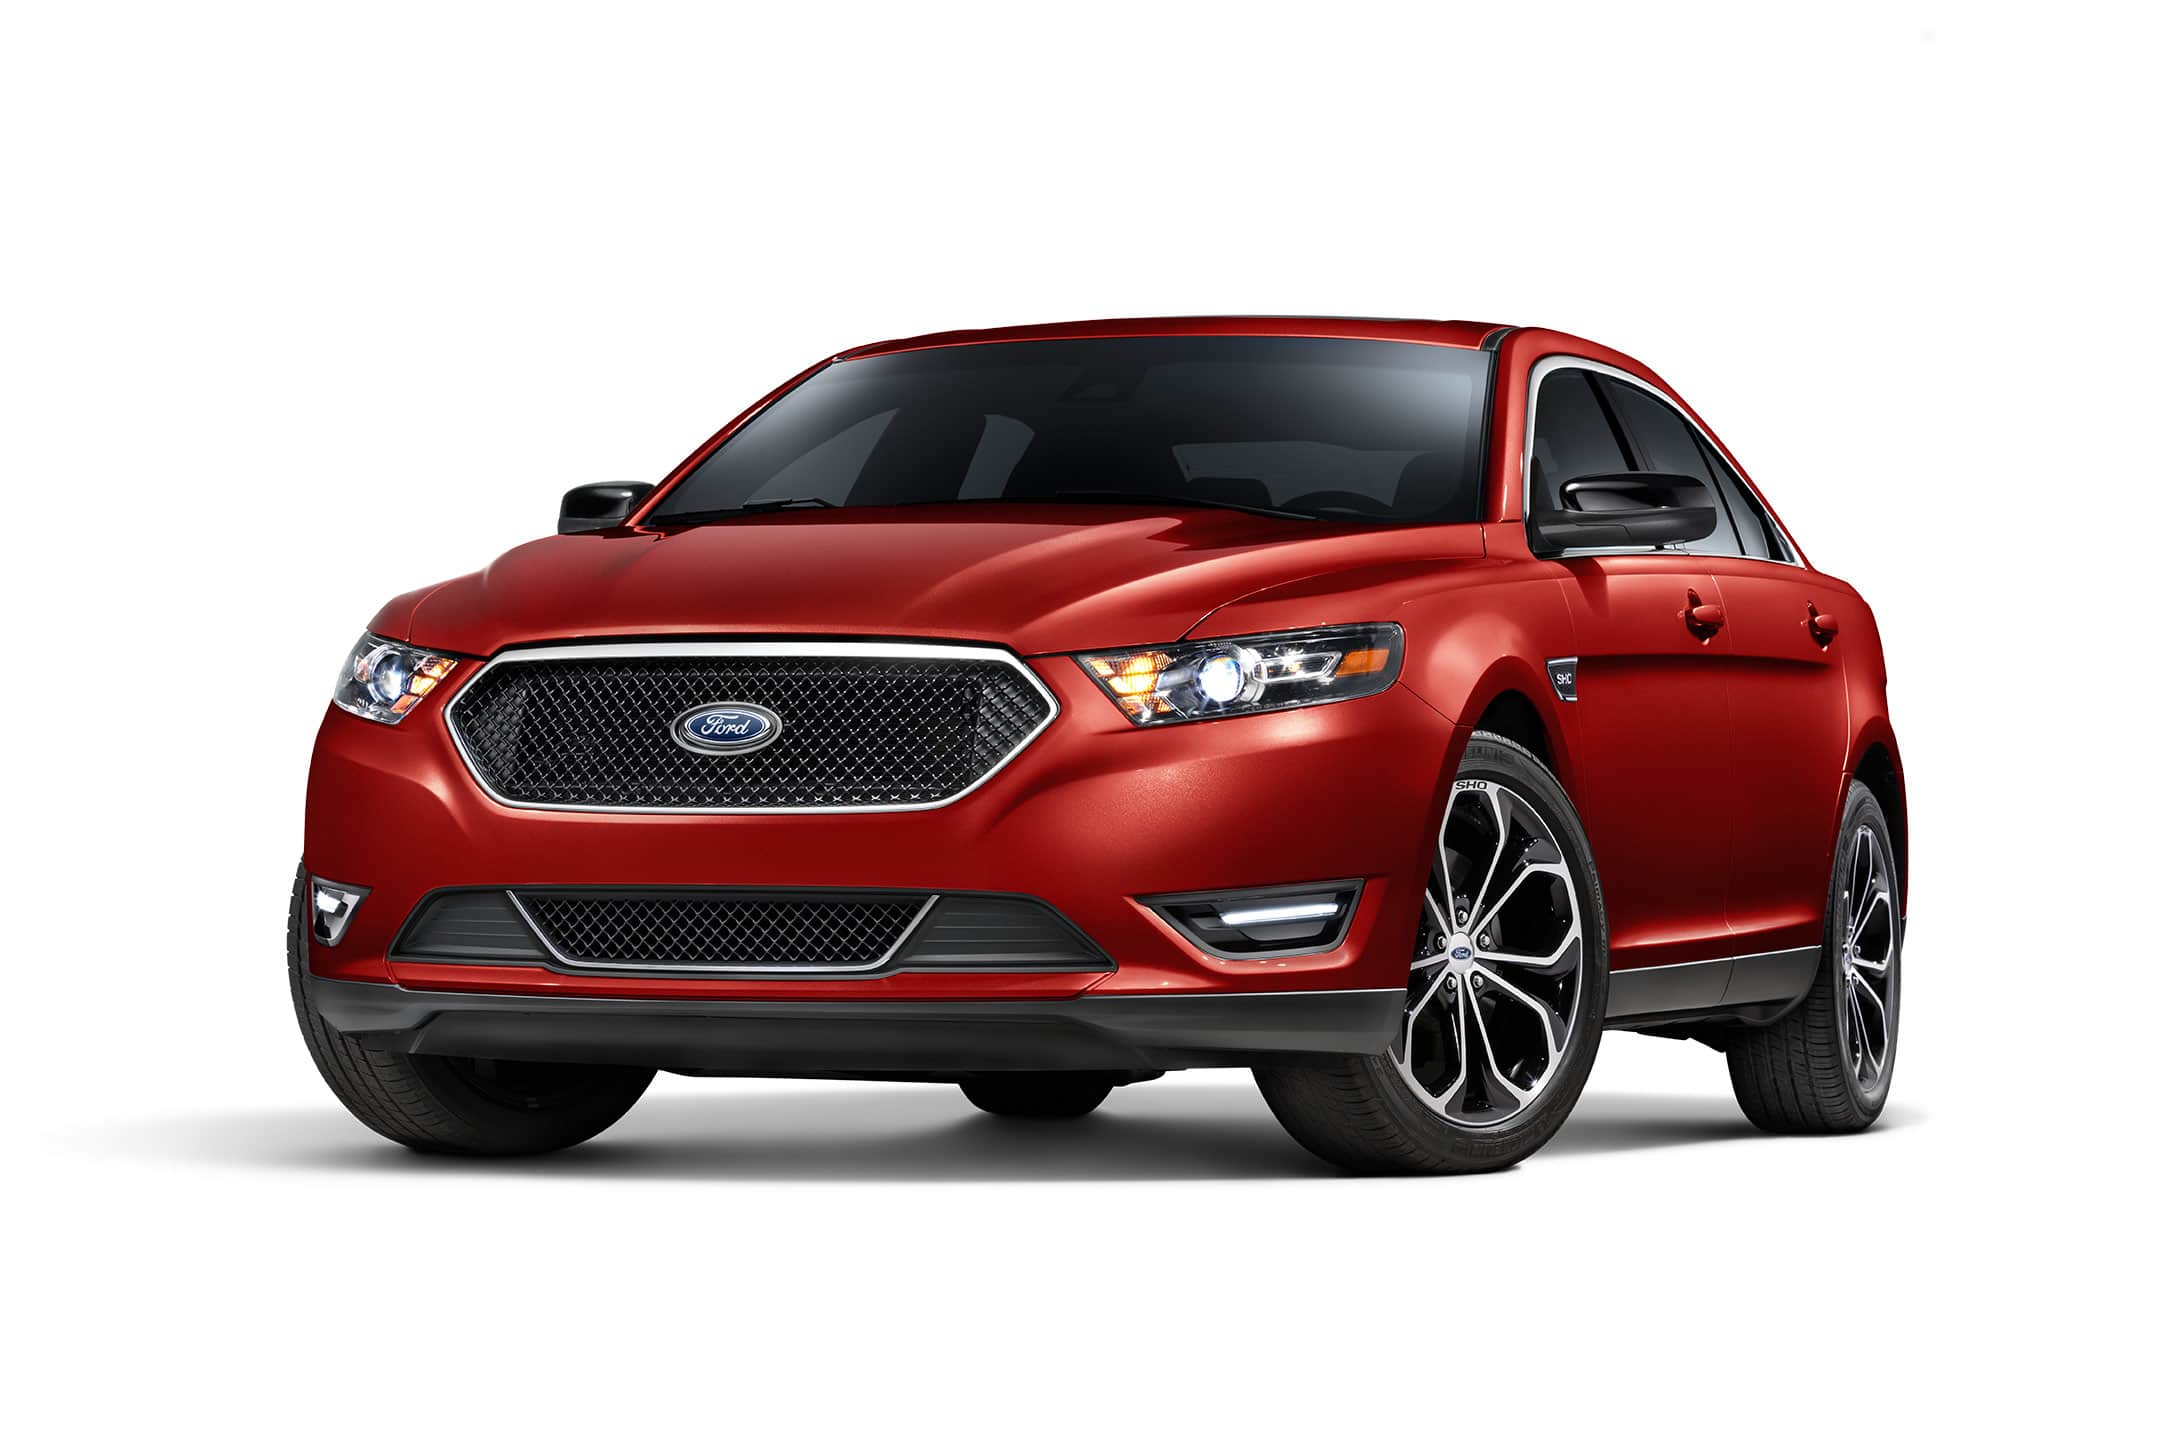 71 Great 2019 Ford Taurus Sho New Review for 2019 Ford Taurus Sho